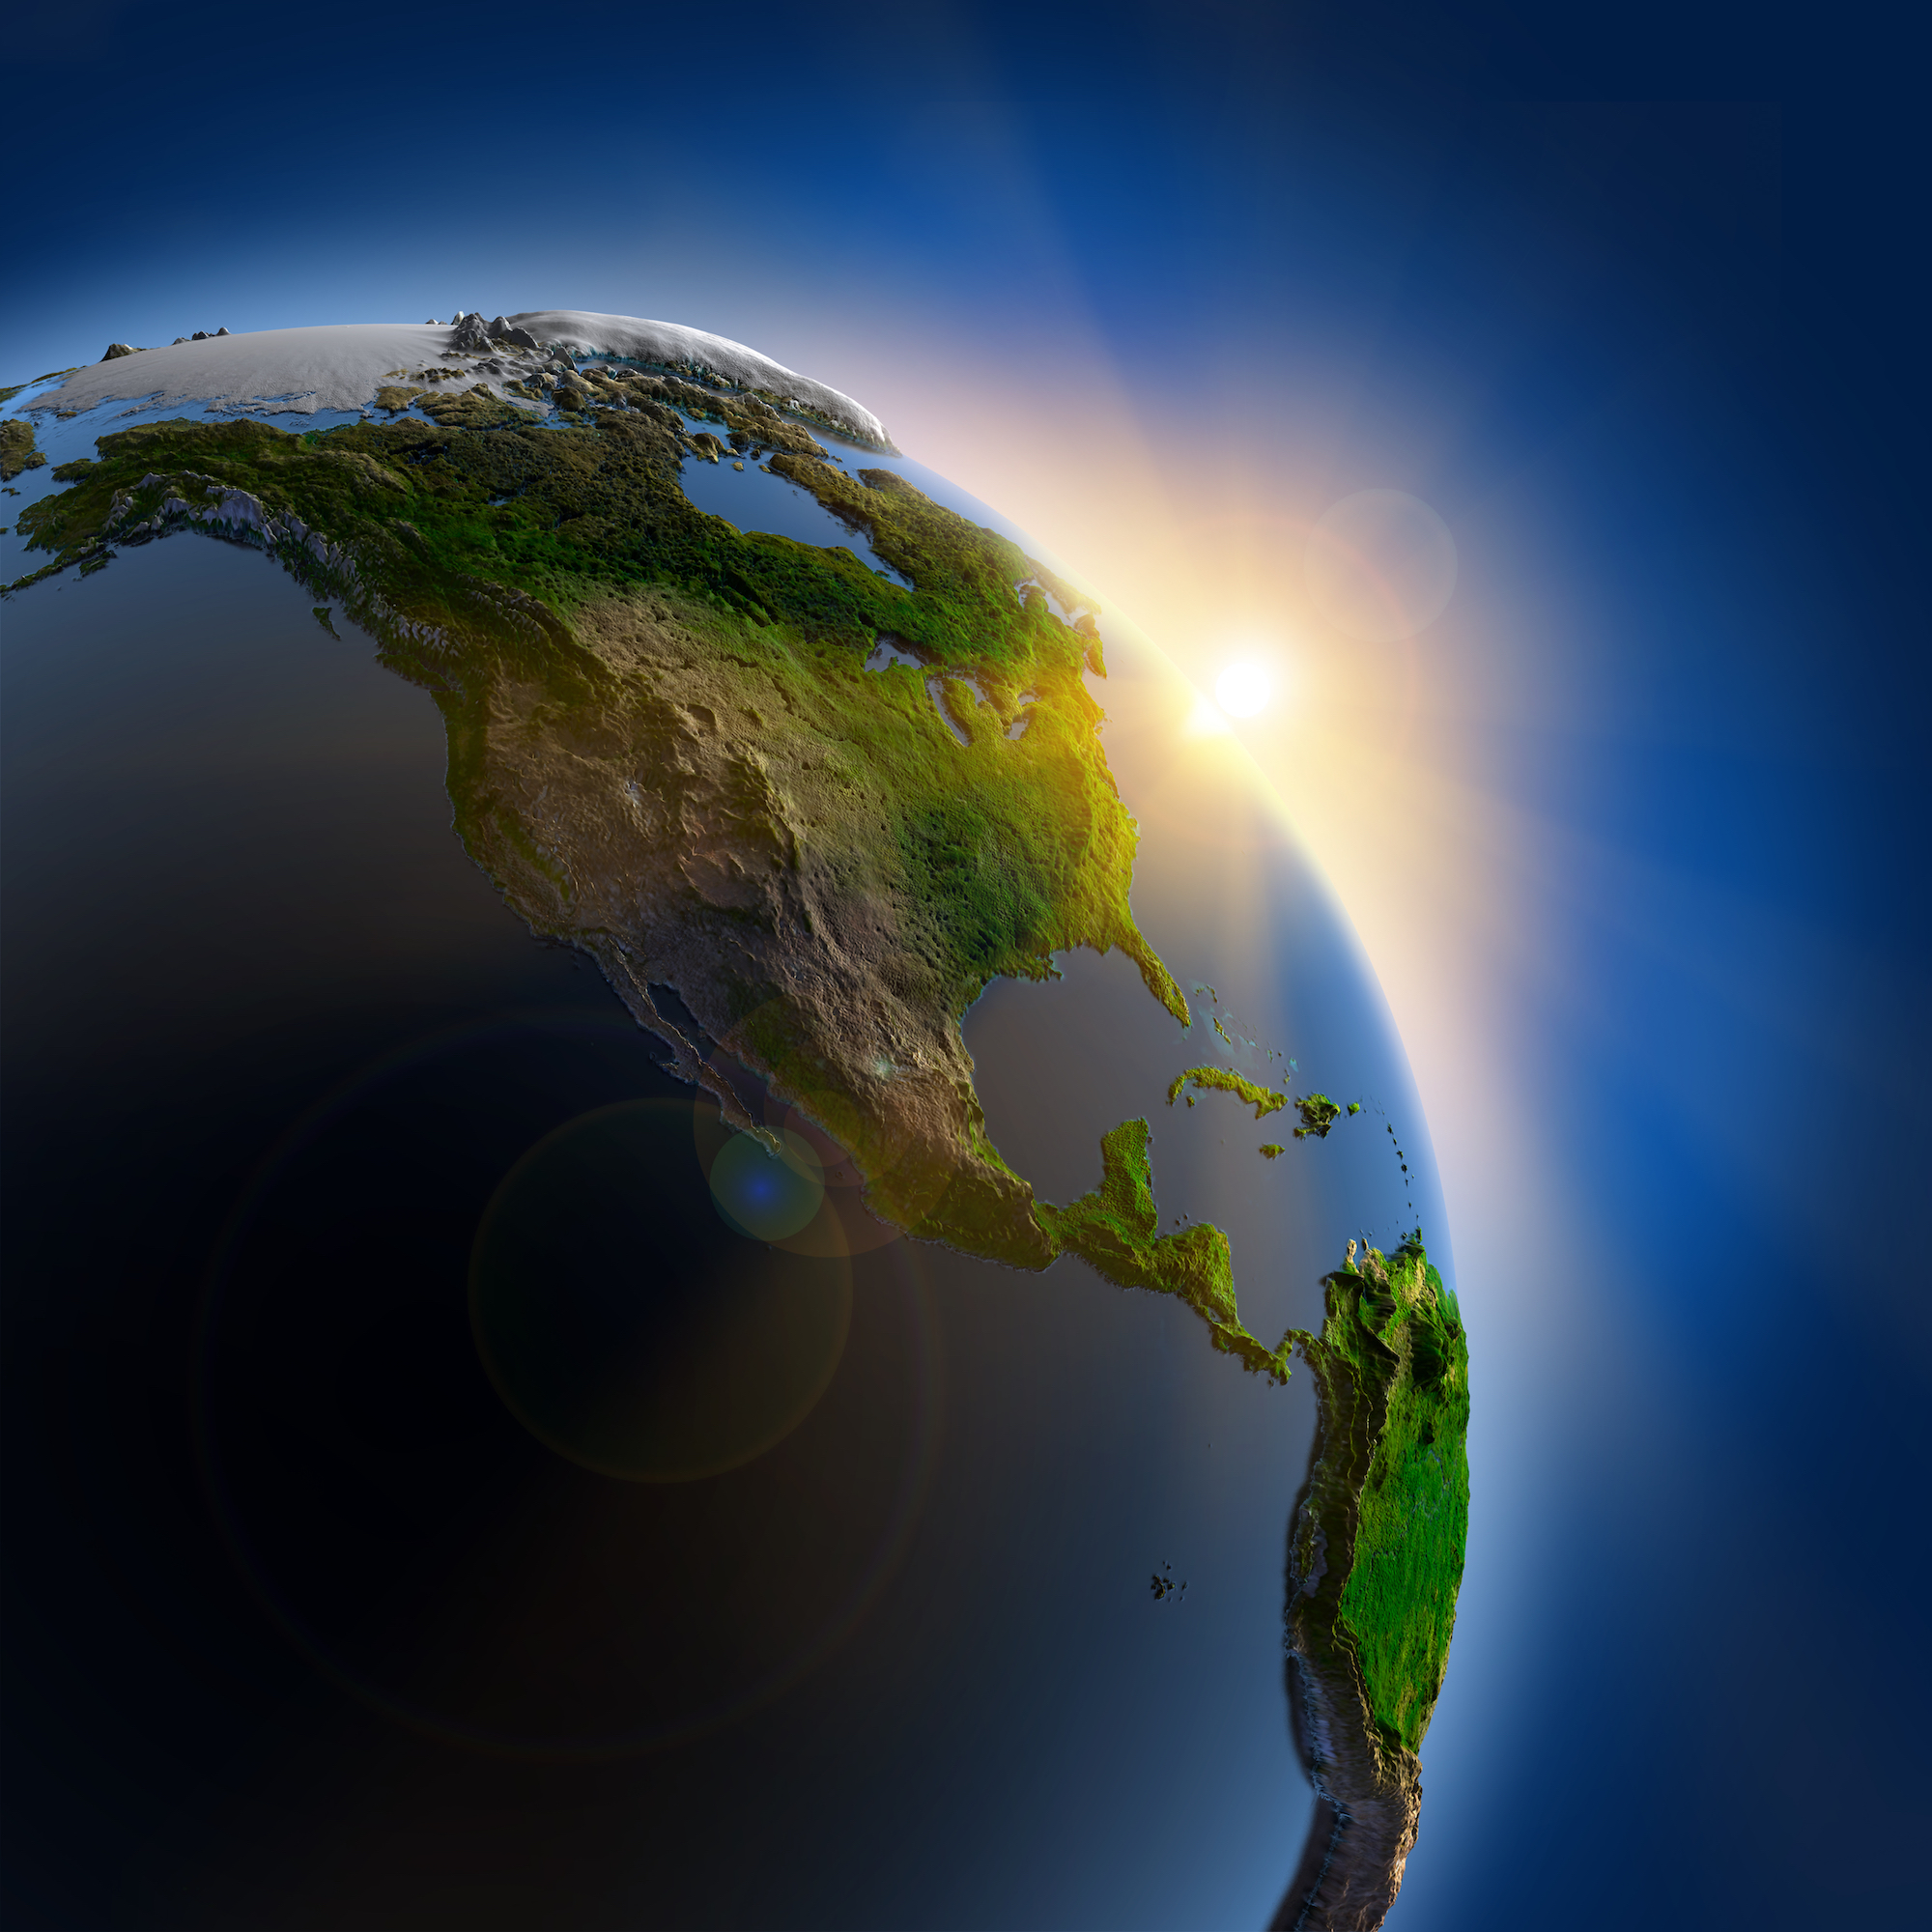 A new study has found that declining CO2 levels in the atmosphere one million years ago significantly altered the Earth's climate.